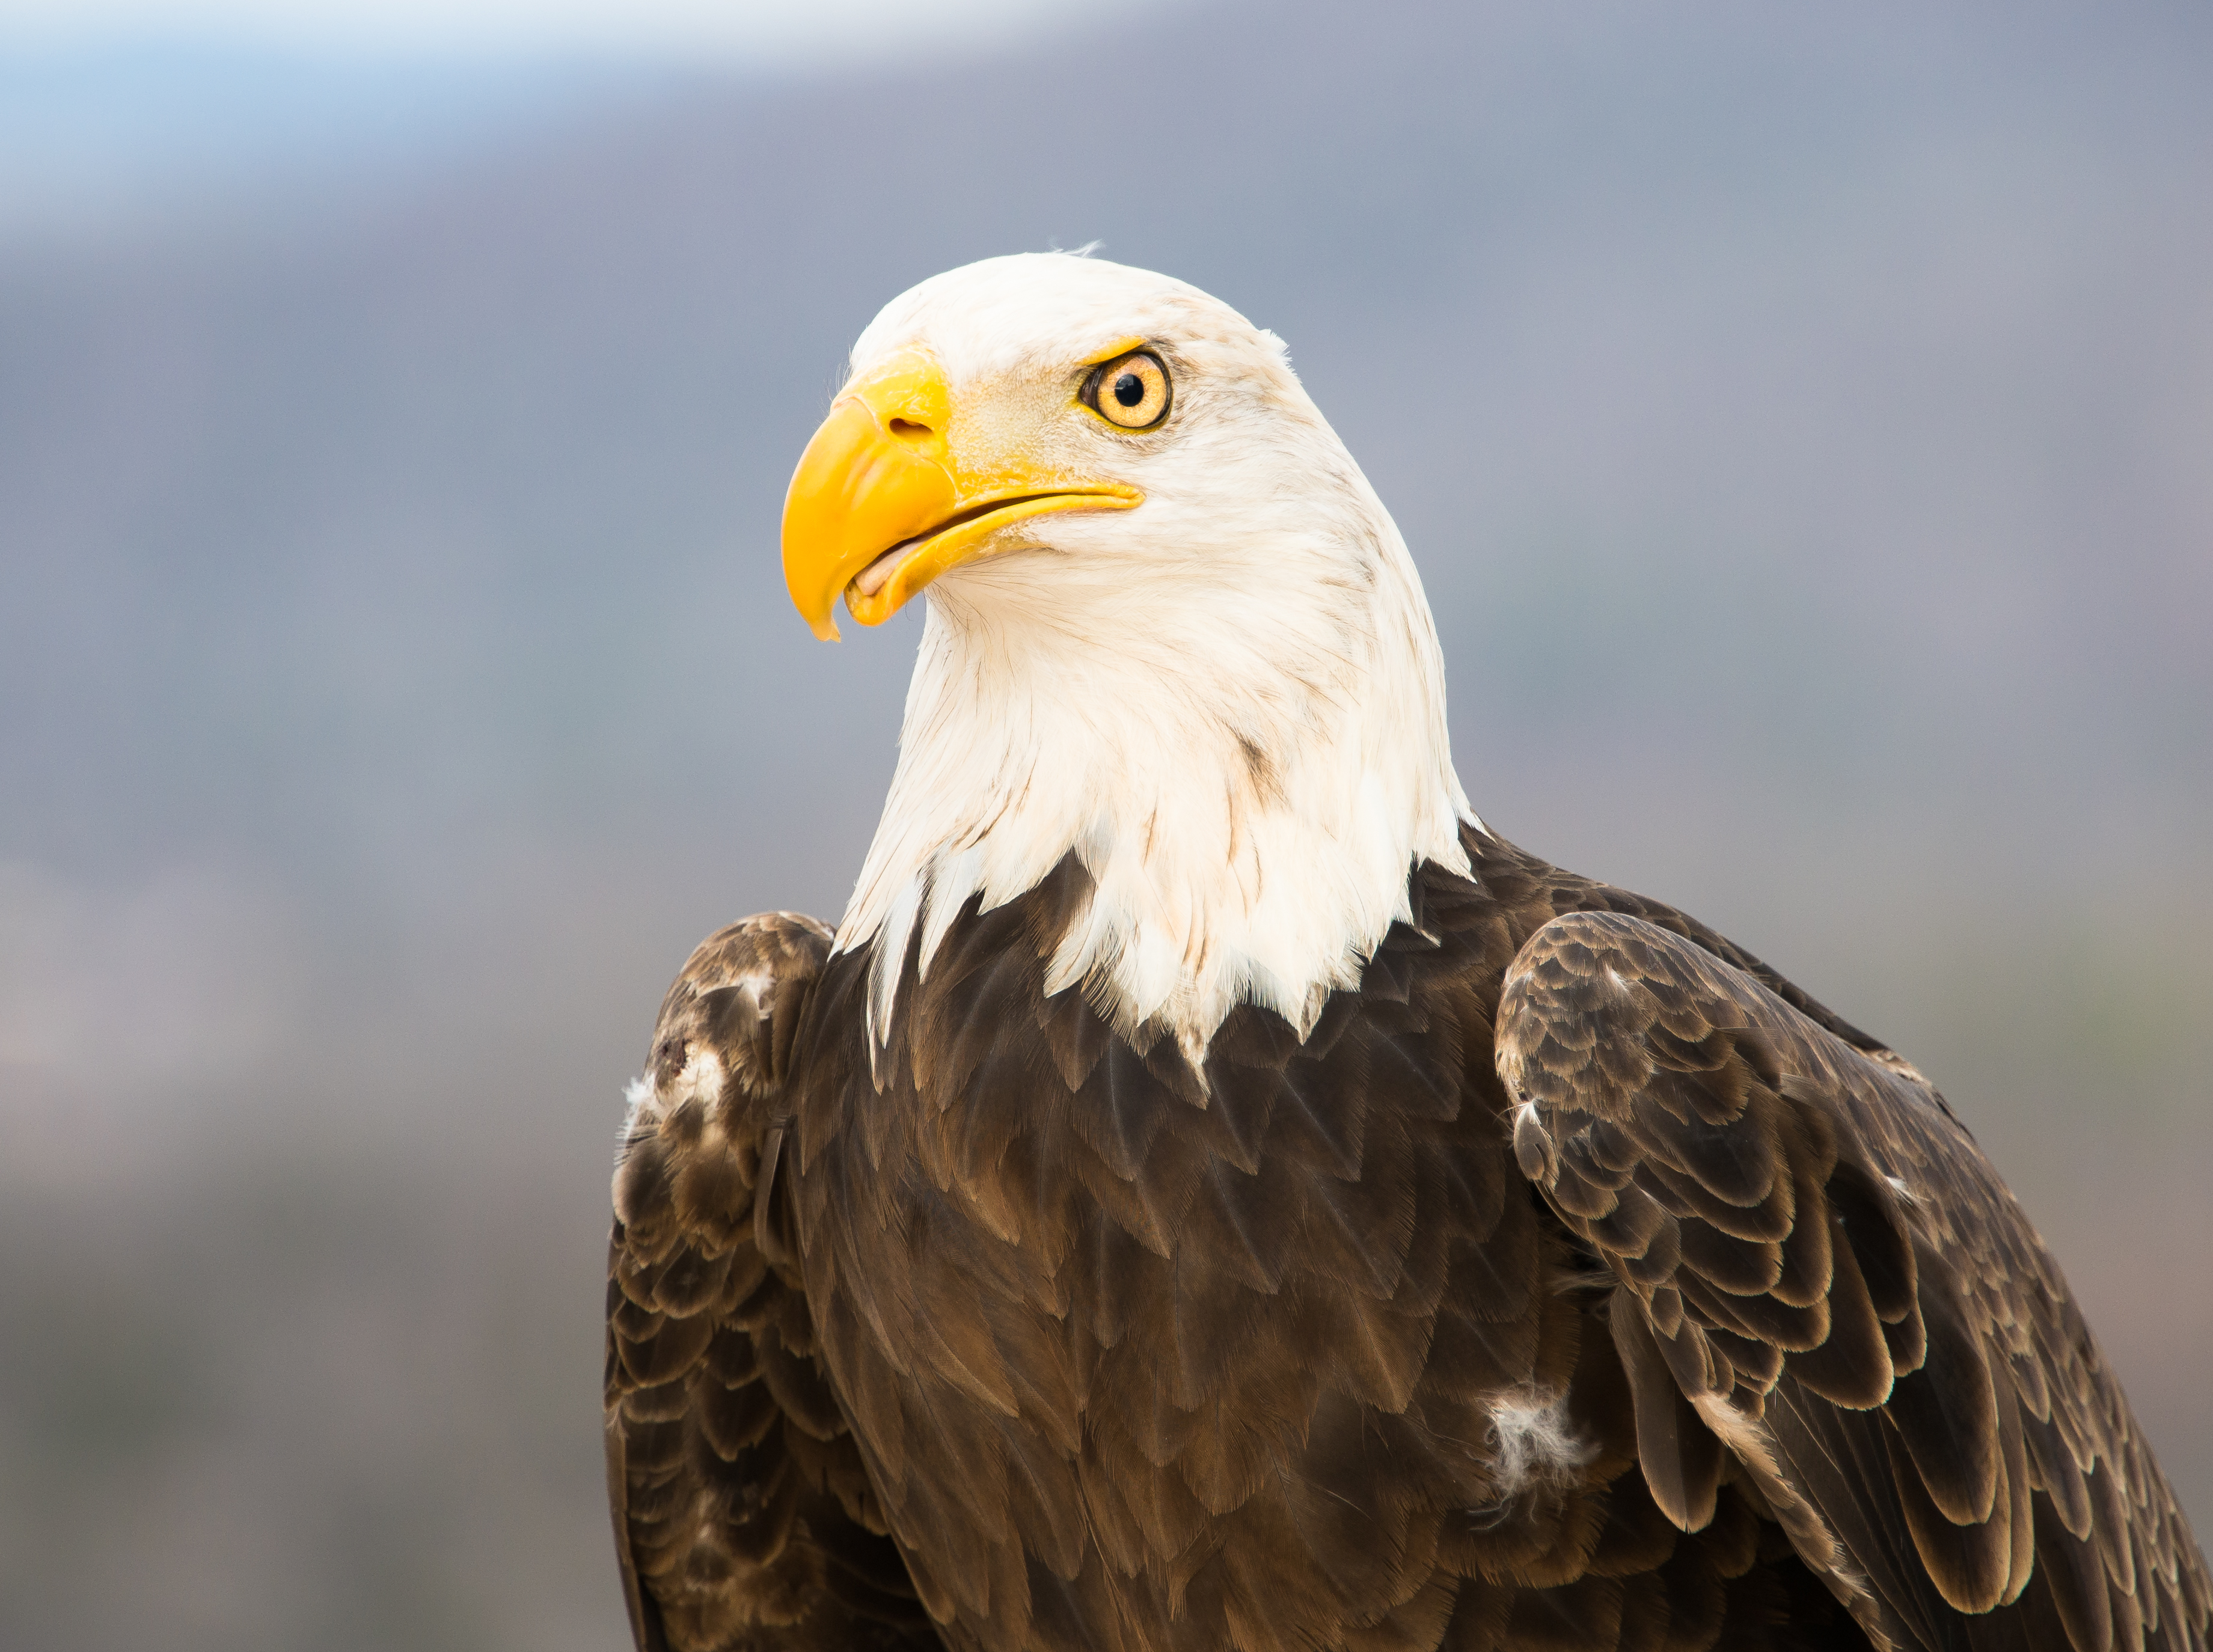 Bald Eagle Photo by Drew Senter